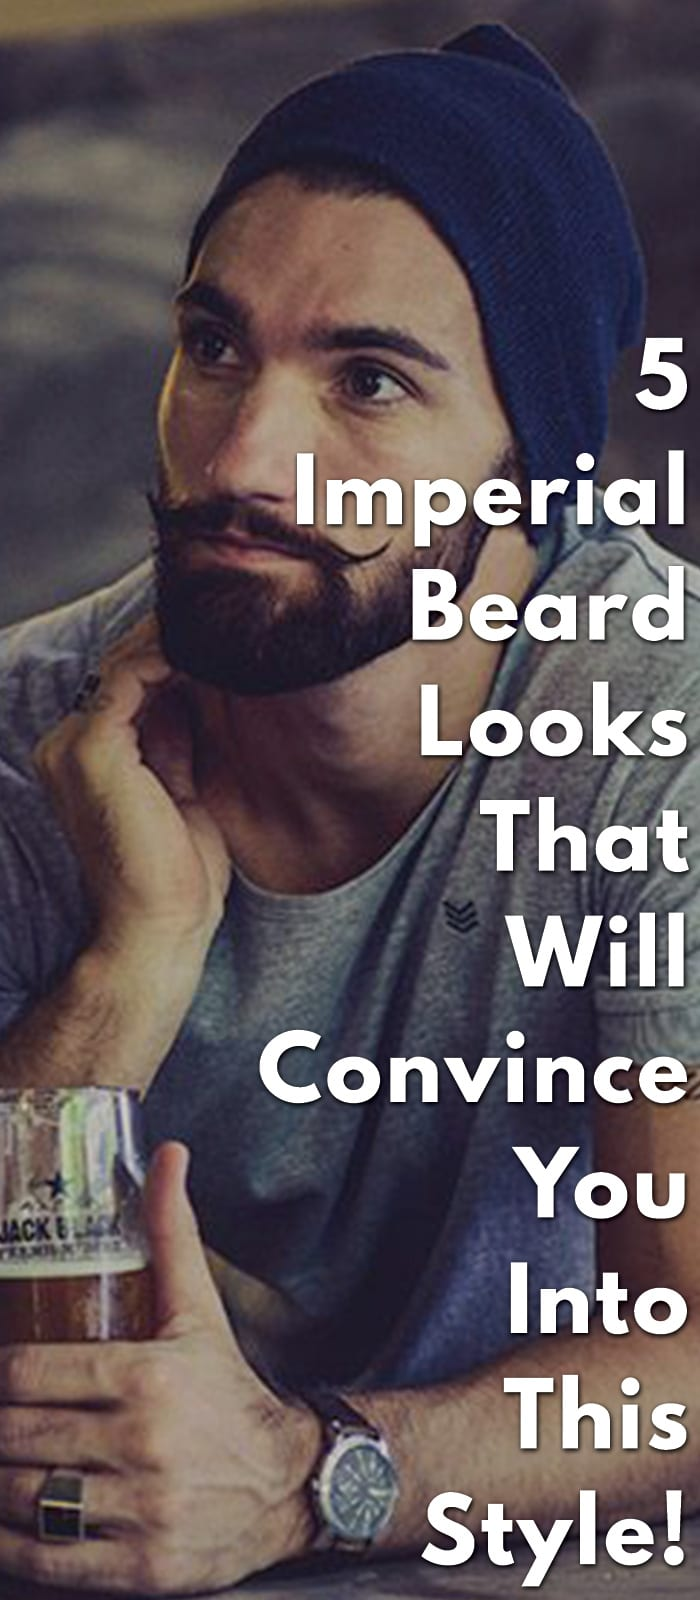 5-Imperial-Beard-Looks-That-Will-Convince-You-Into-This-Style!